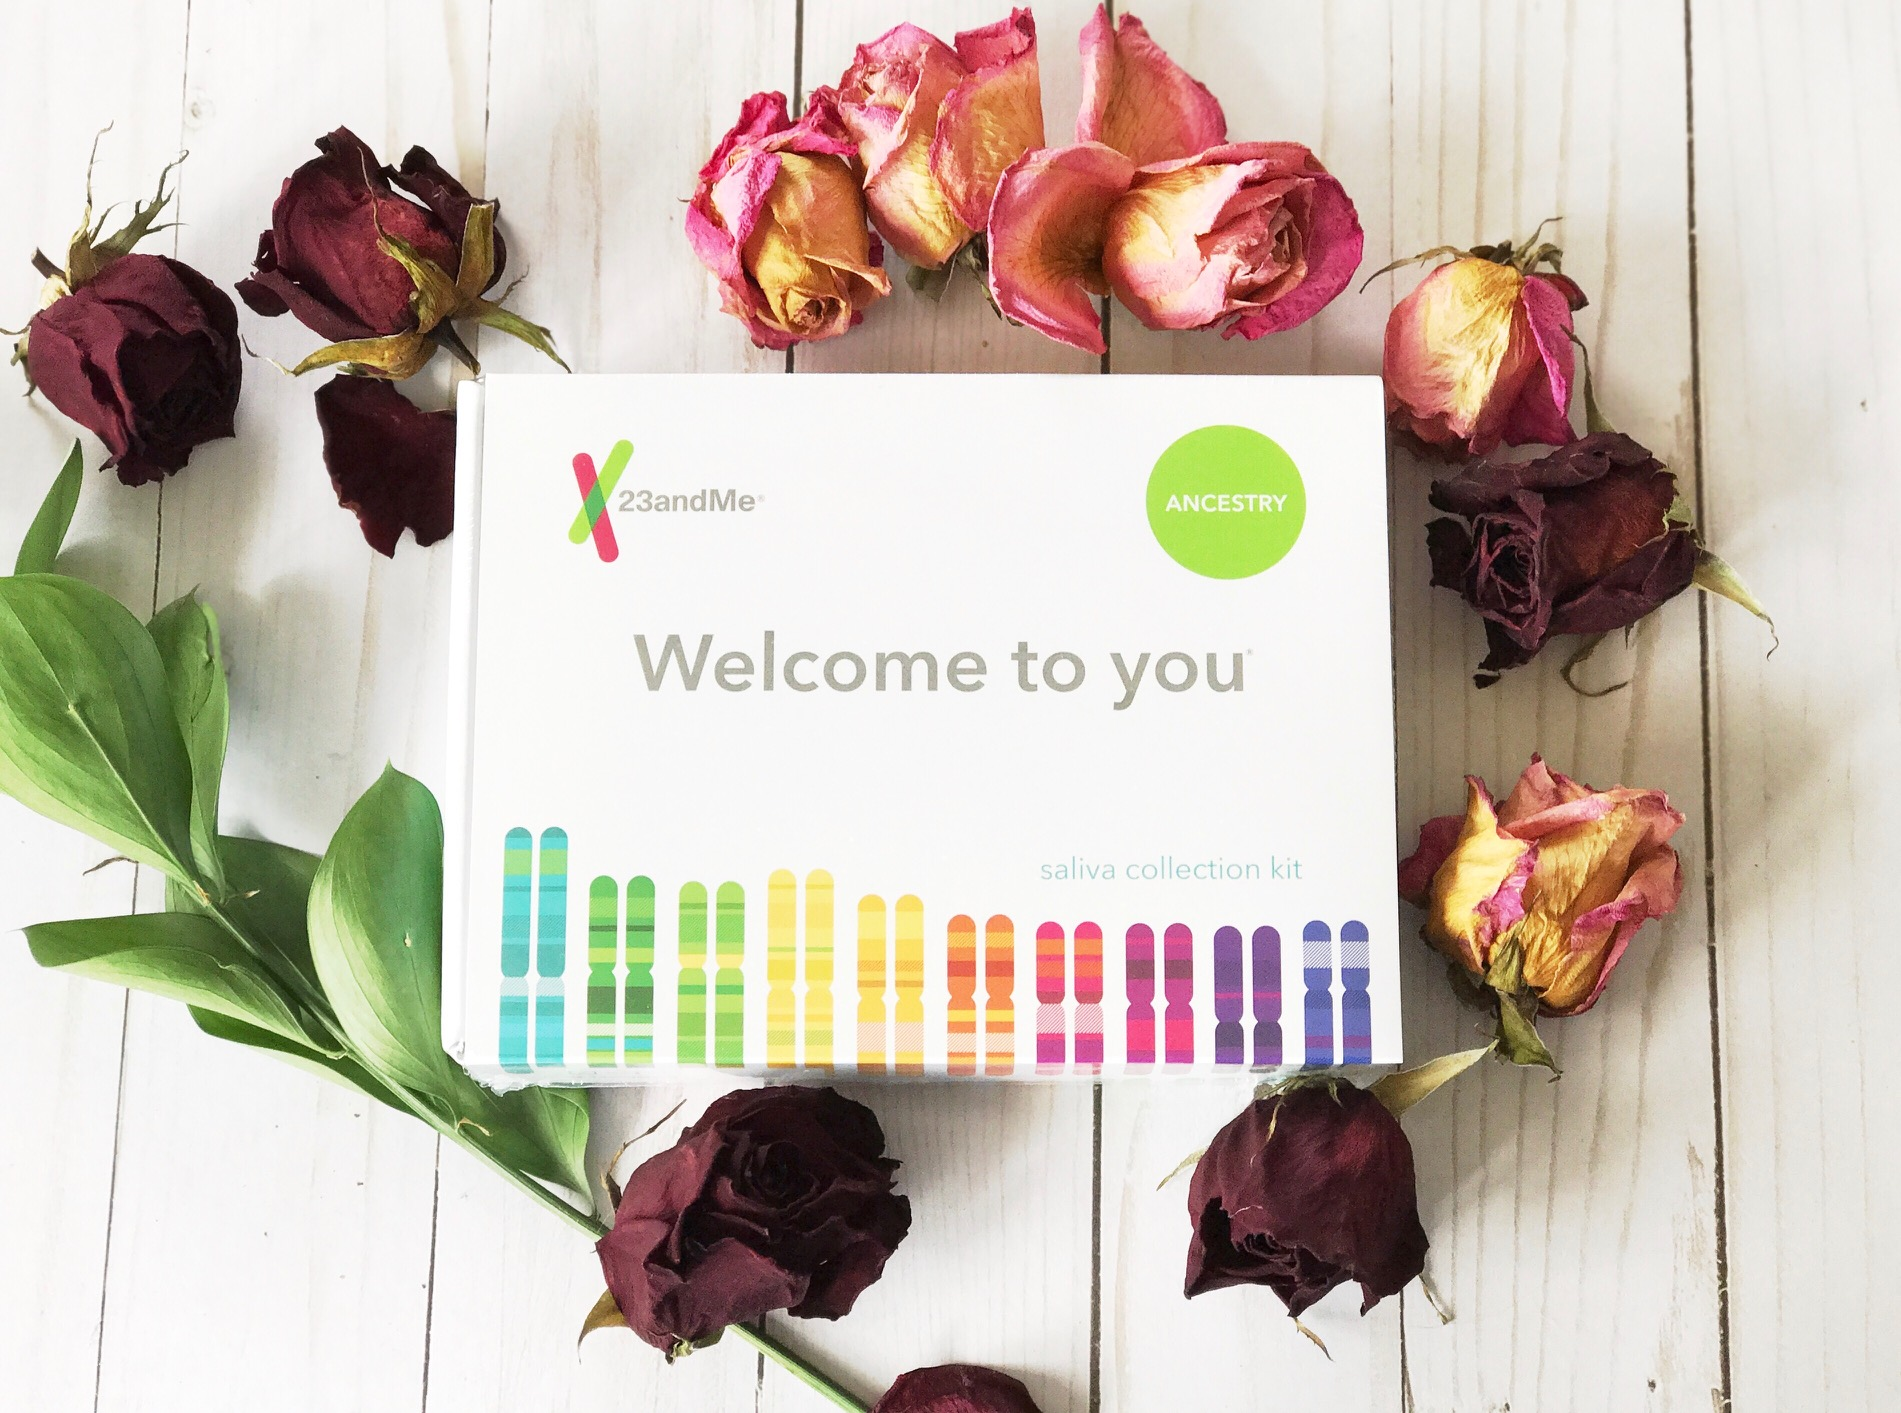 What I Discovered From 23andMe – DNA Genetic Testing